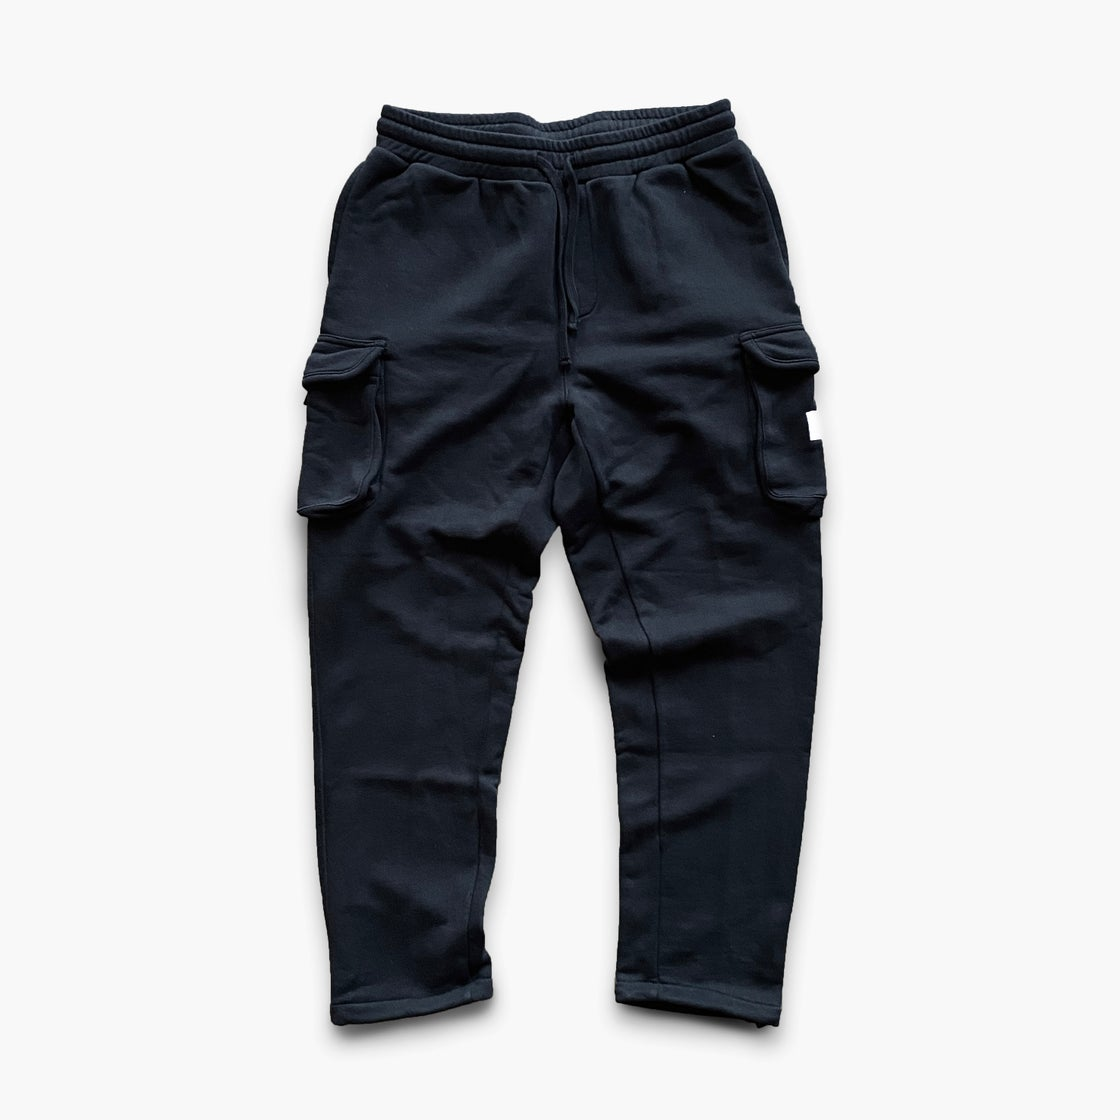 Image of BLACK CARGO Pants By NWHR